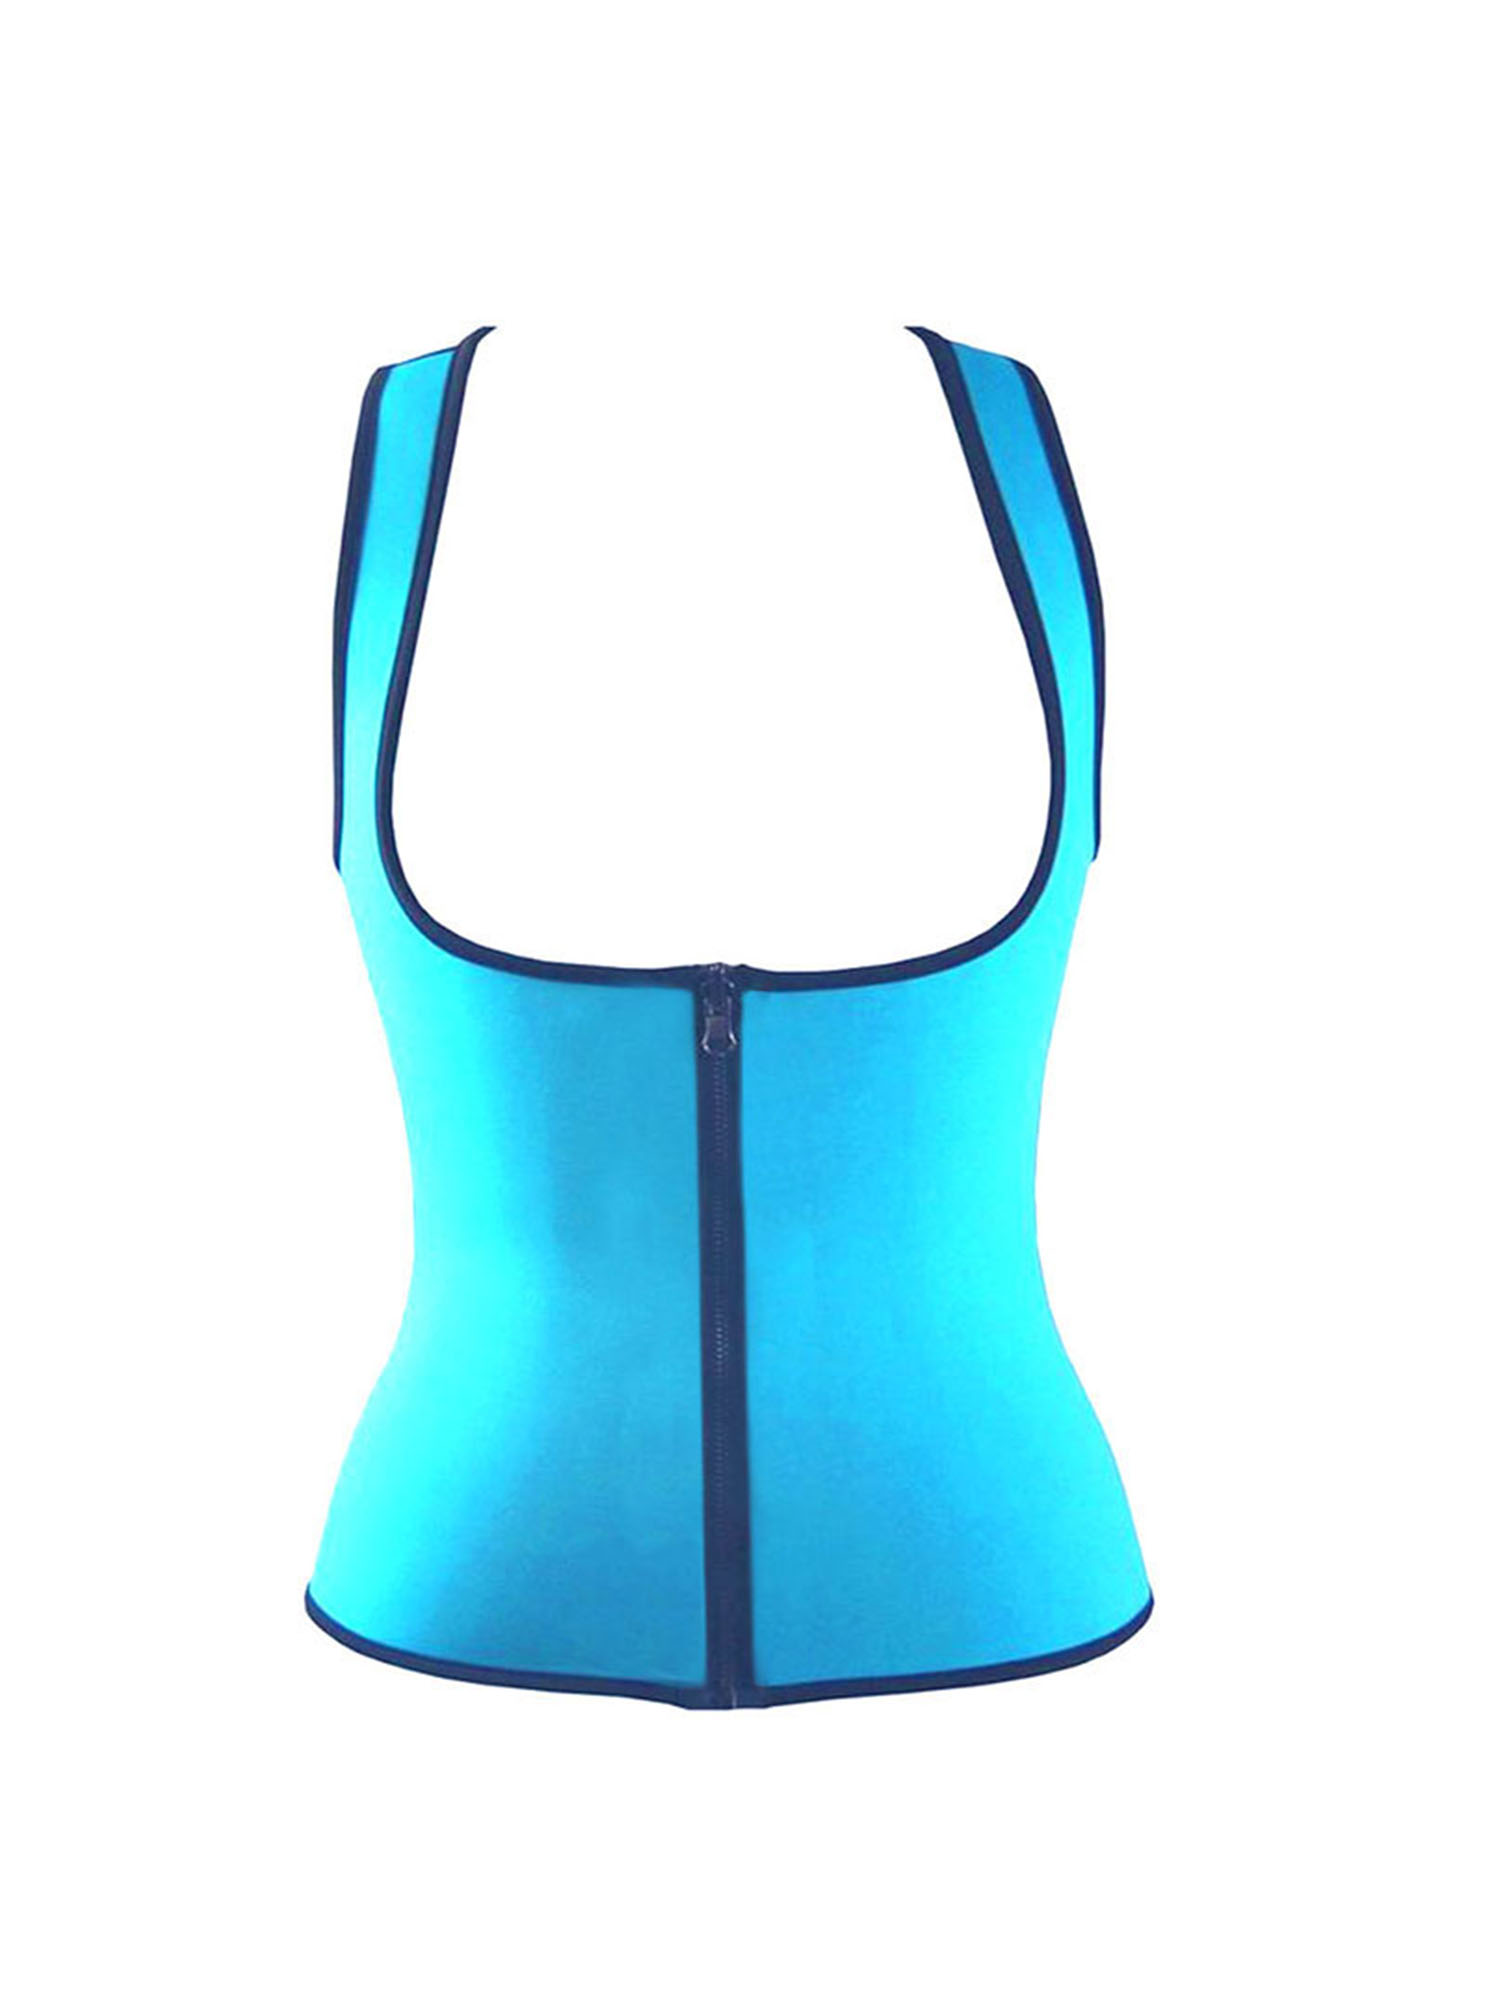 Women's Hot Sweat Slimming Neoprene Shirt Vest Body Shapers for Weight Loss With Zipper by SANUCL